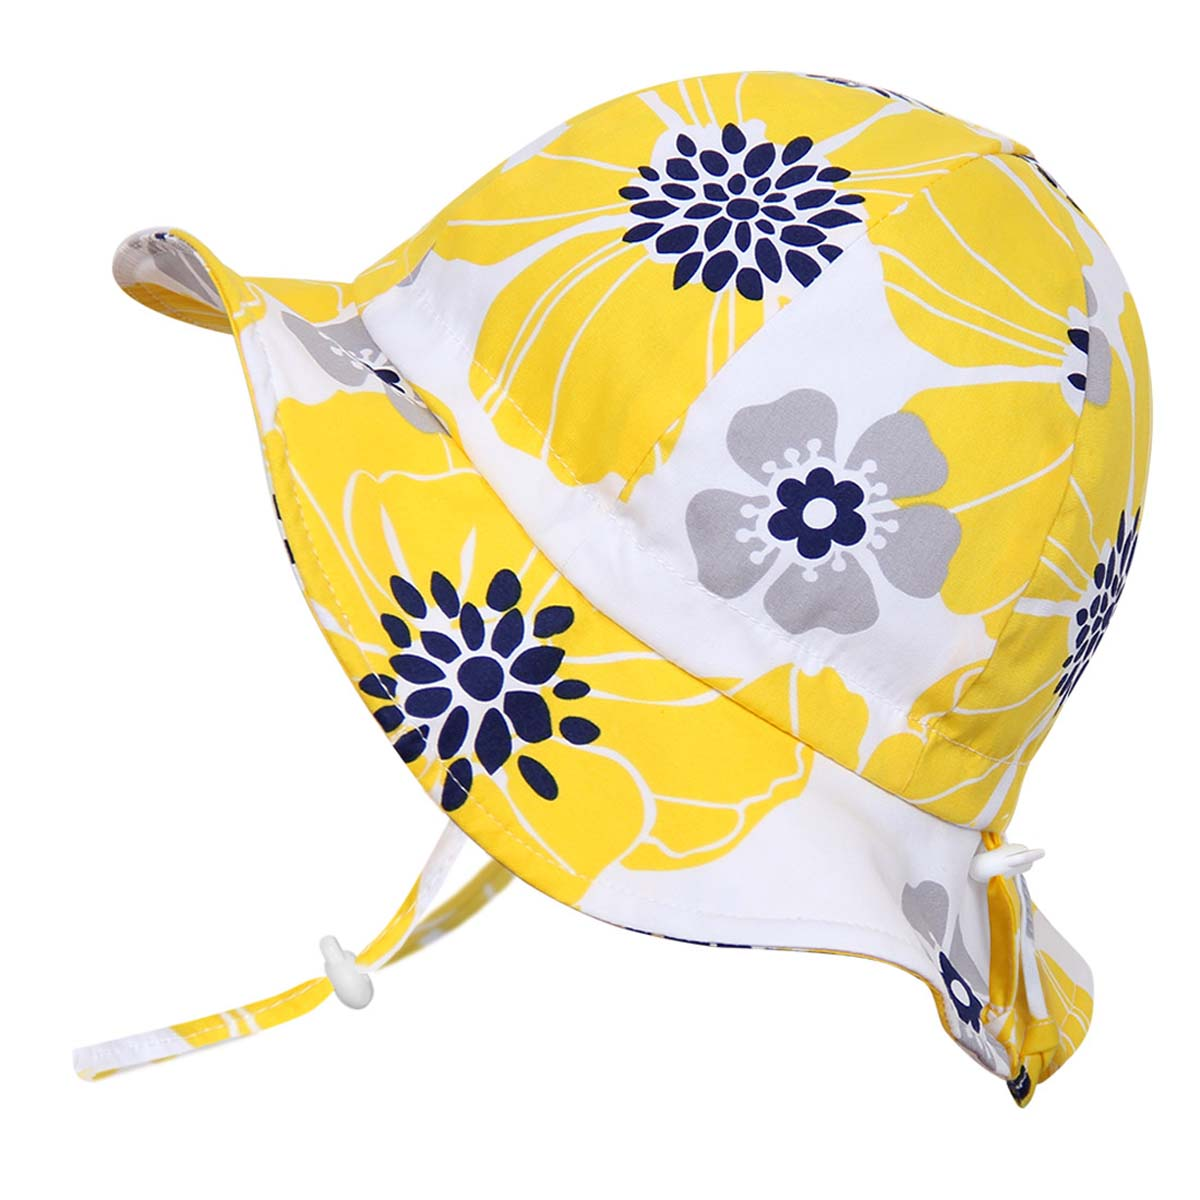 d1de2c21 Add to My Lists. Twinklebelle Cotton Floppy Grow With Me Sun Hat ...